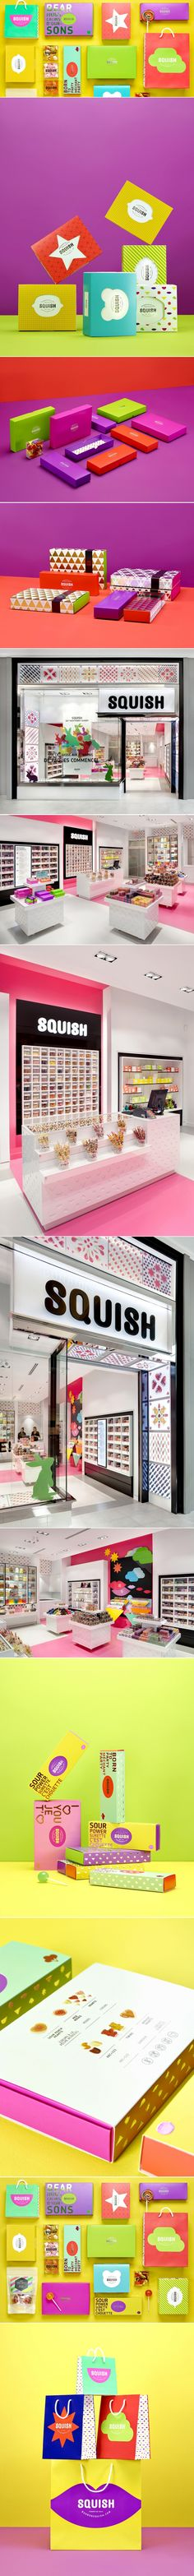 Squish Candies — The Dieline - Branding & Packaging Design